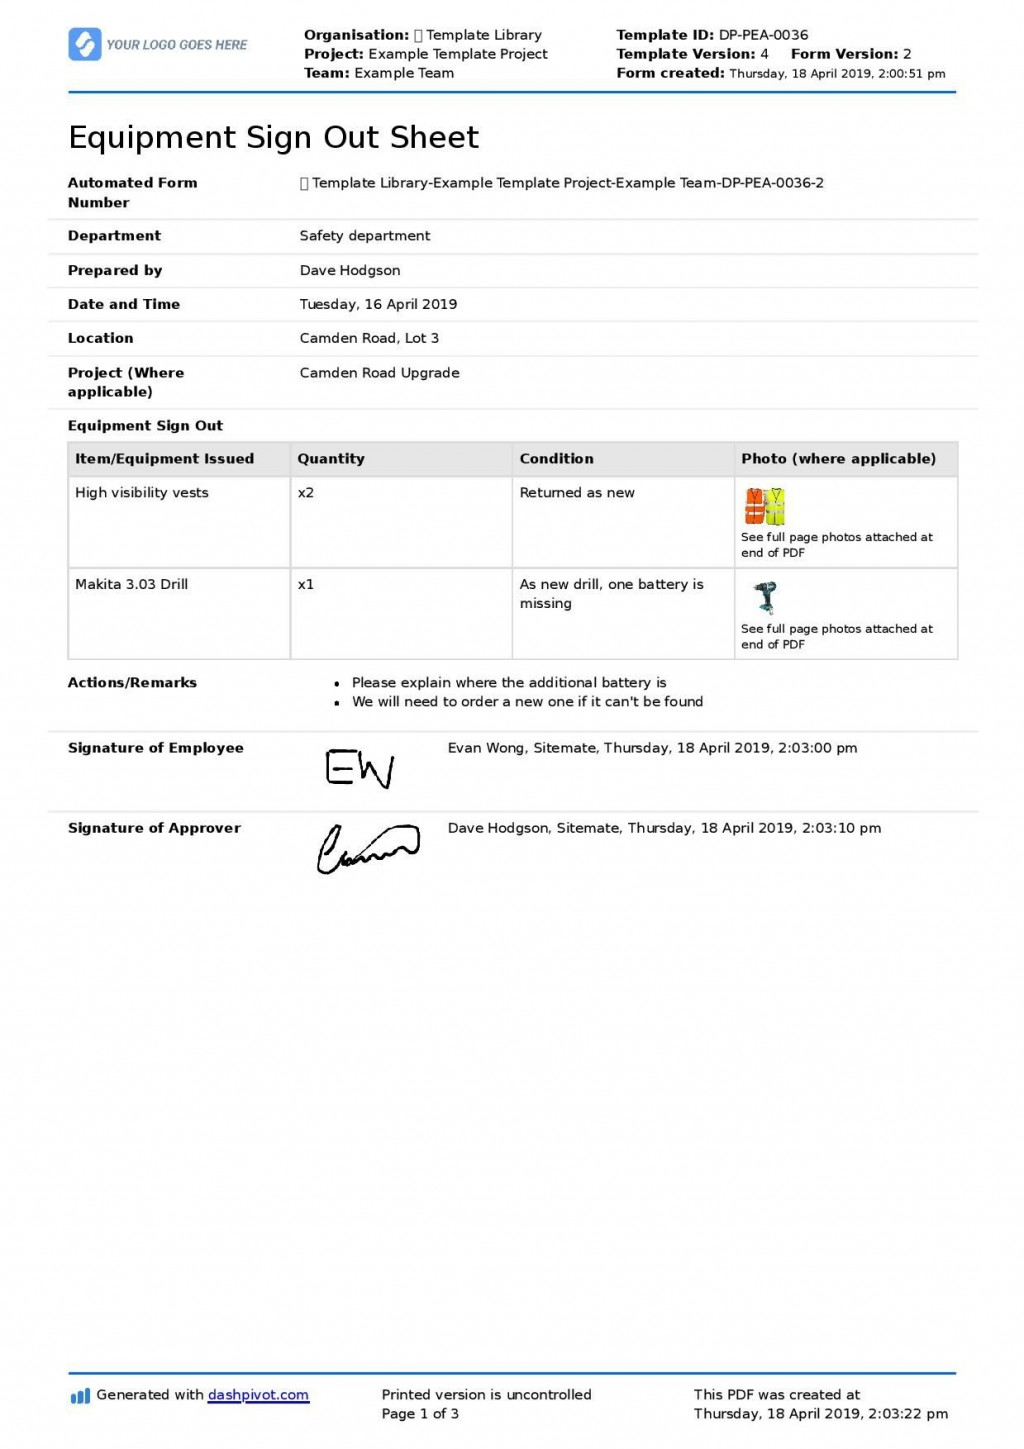 002 Stupendou Employee Sign In Sheet Template Image  Out Excel Word Free TrainingLarge